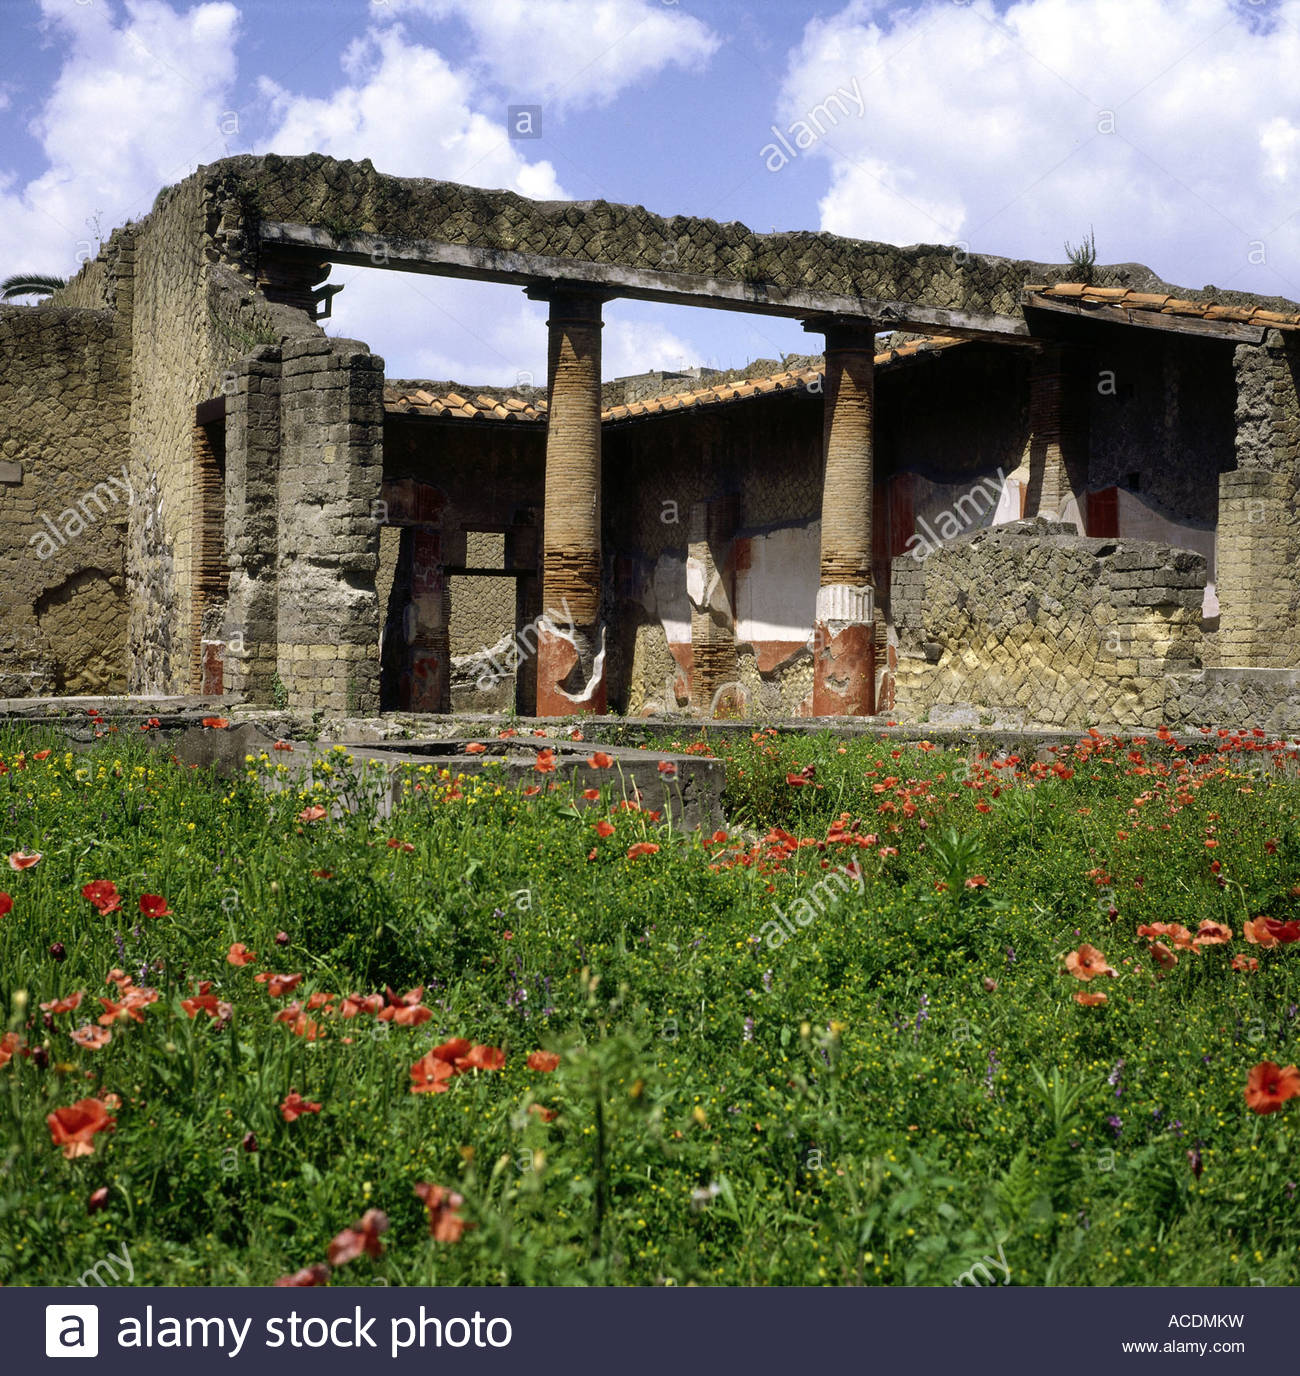 geography / travel, Italy, Naples, Ercolano, Herculaneum, House of the Gem (Casa della Gemma), Additional-Rights Stock Photo